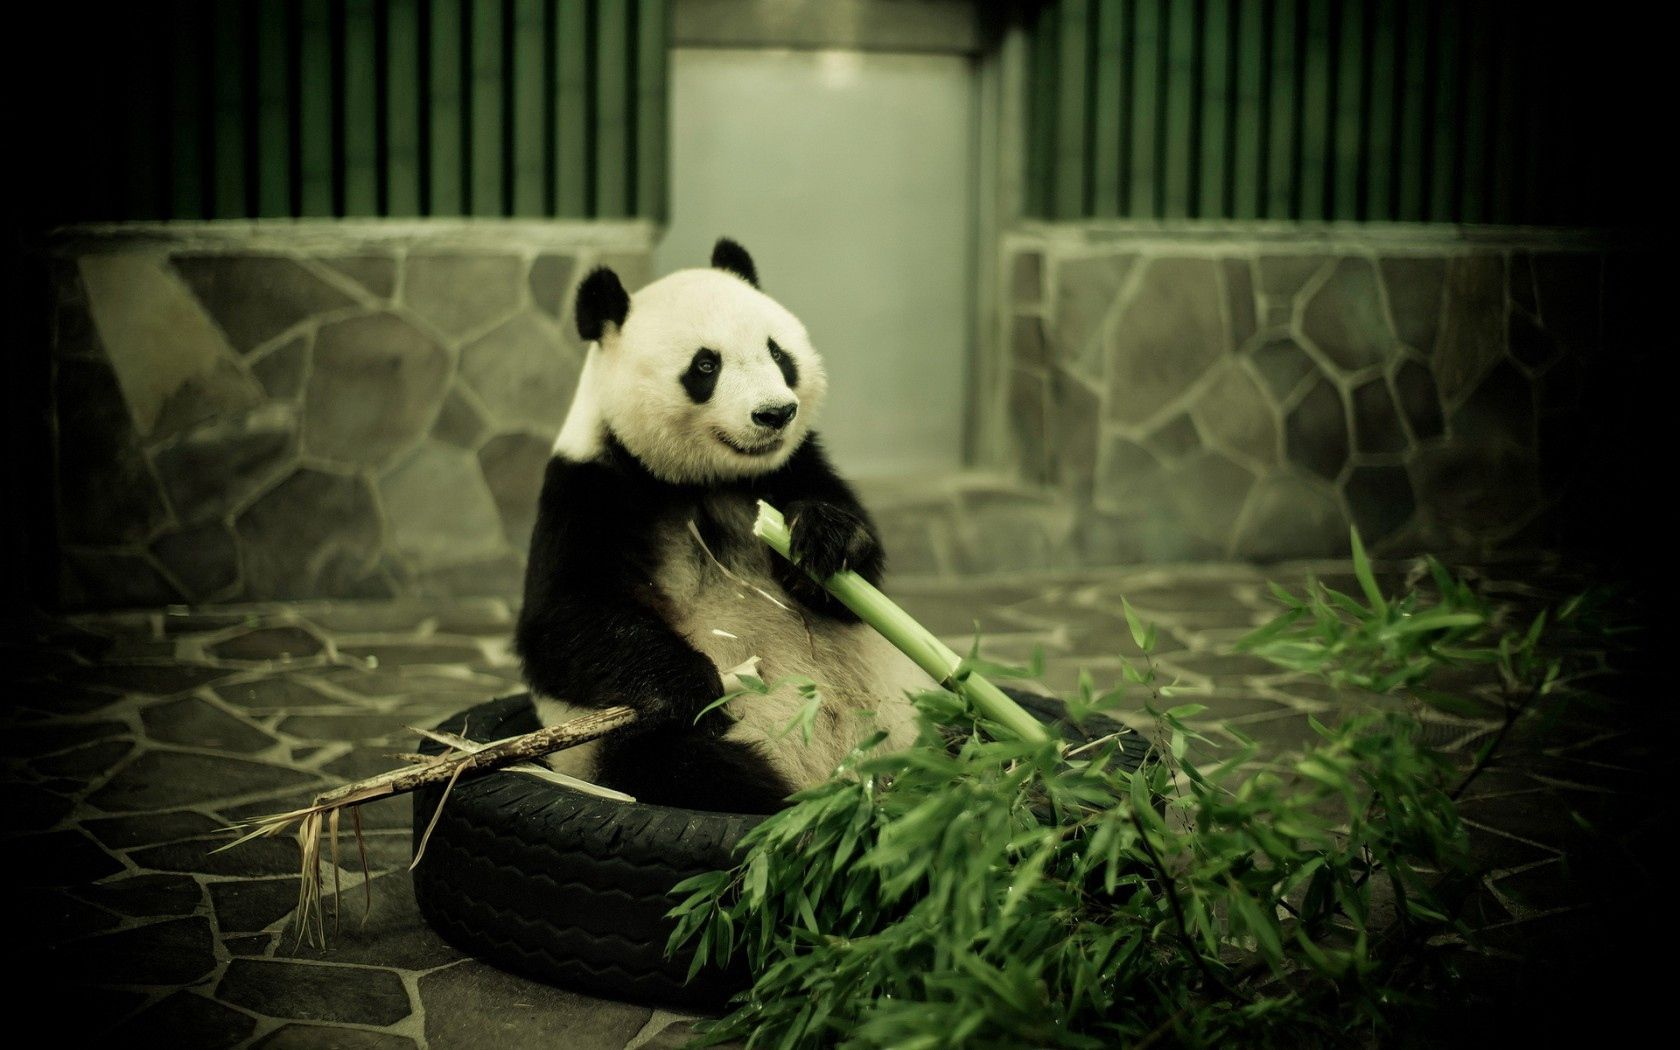 54704 download wallpaper Animals, Panda, Zoo, Bamboo screensavers and pictures for free